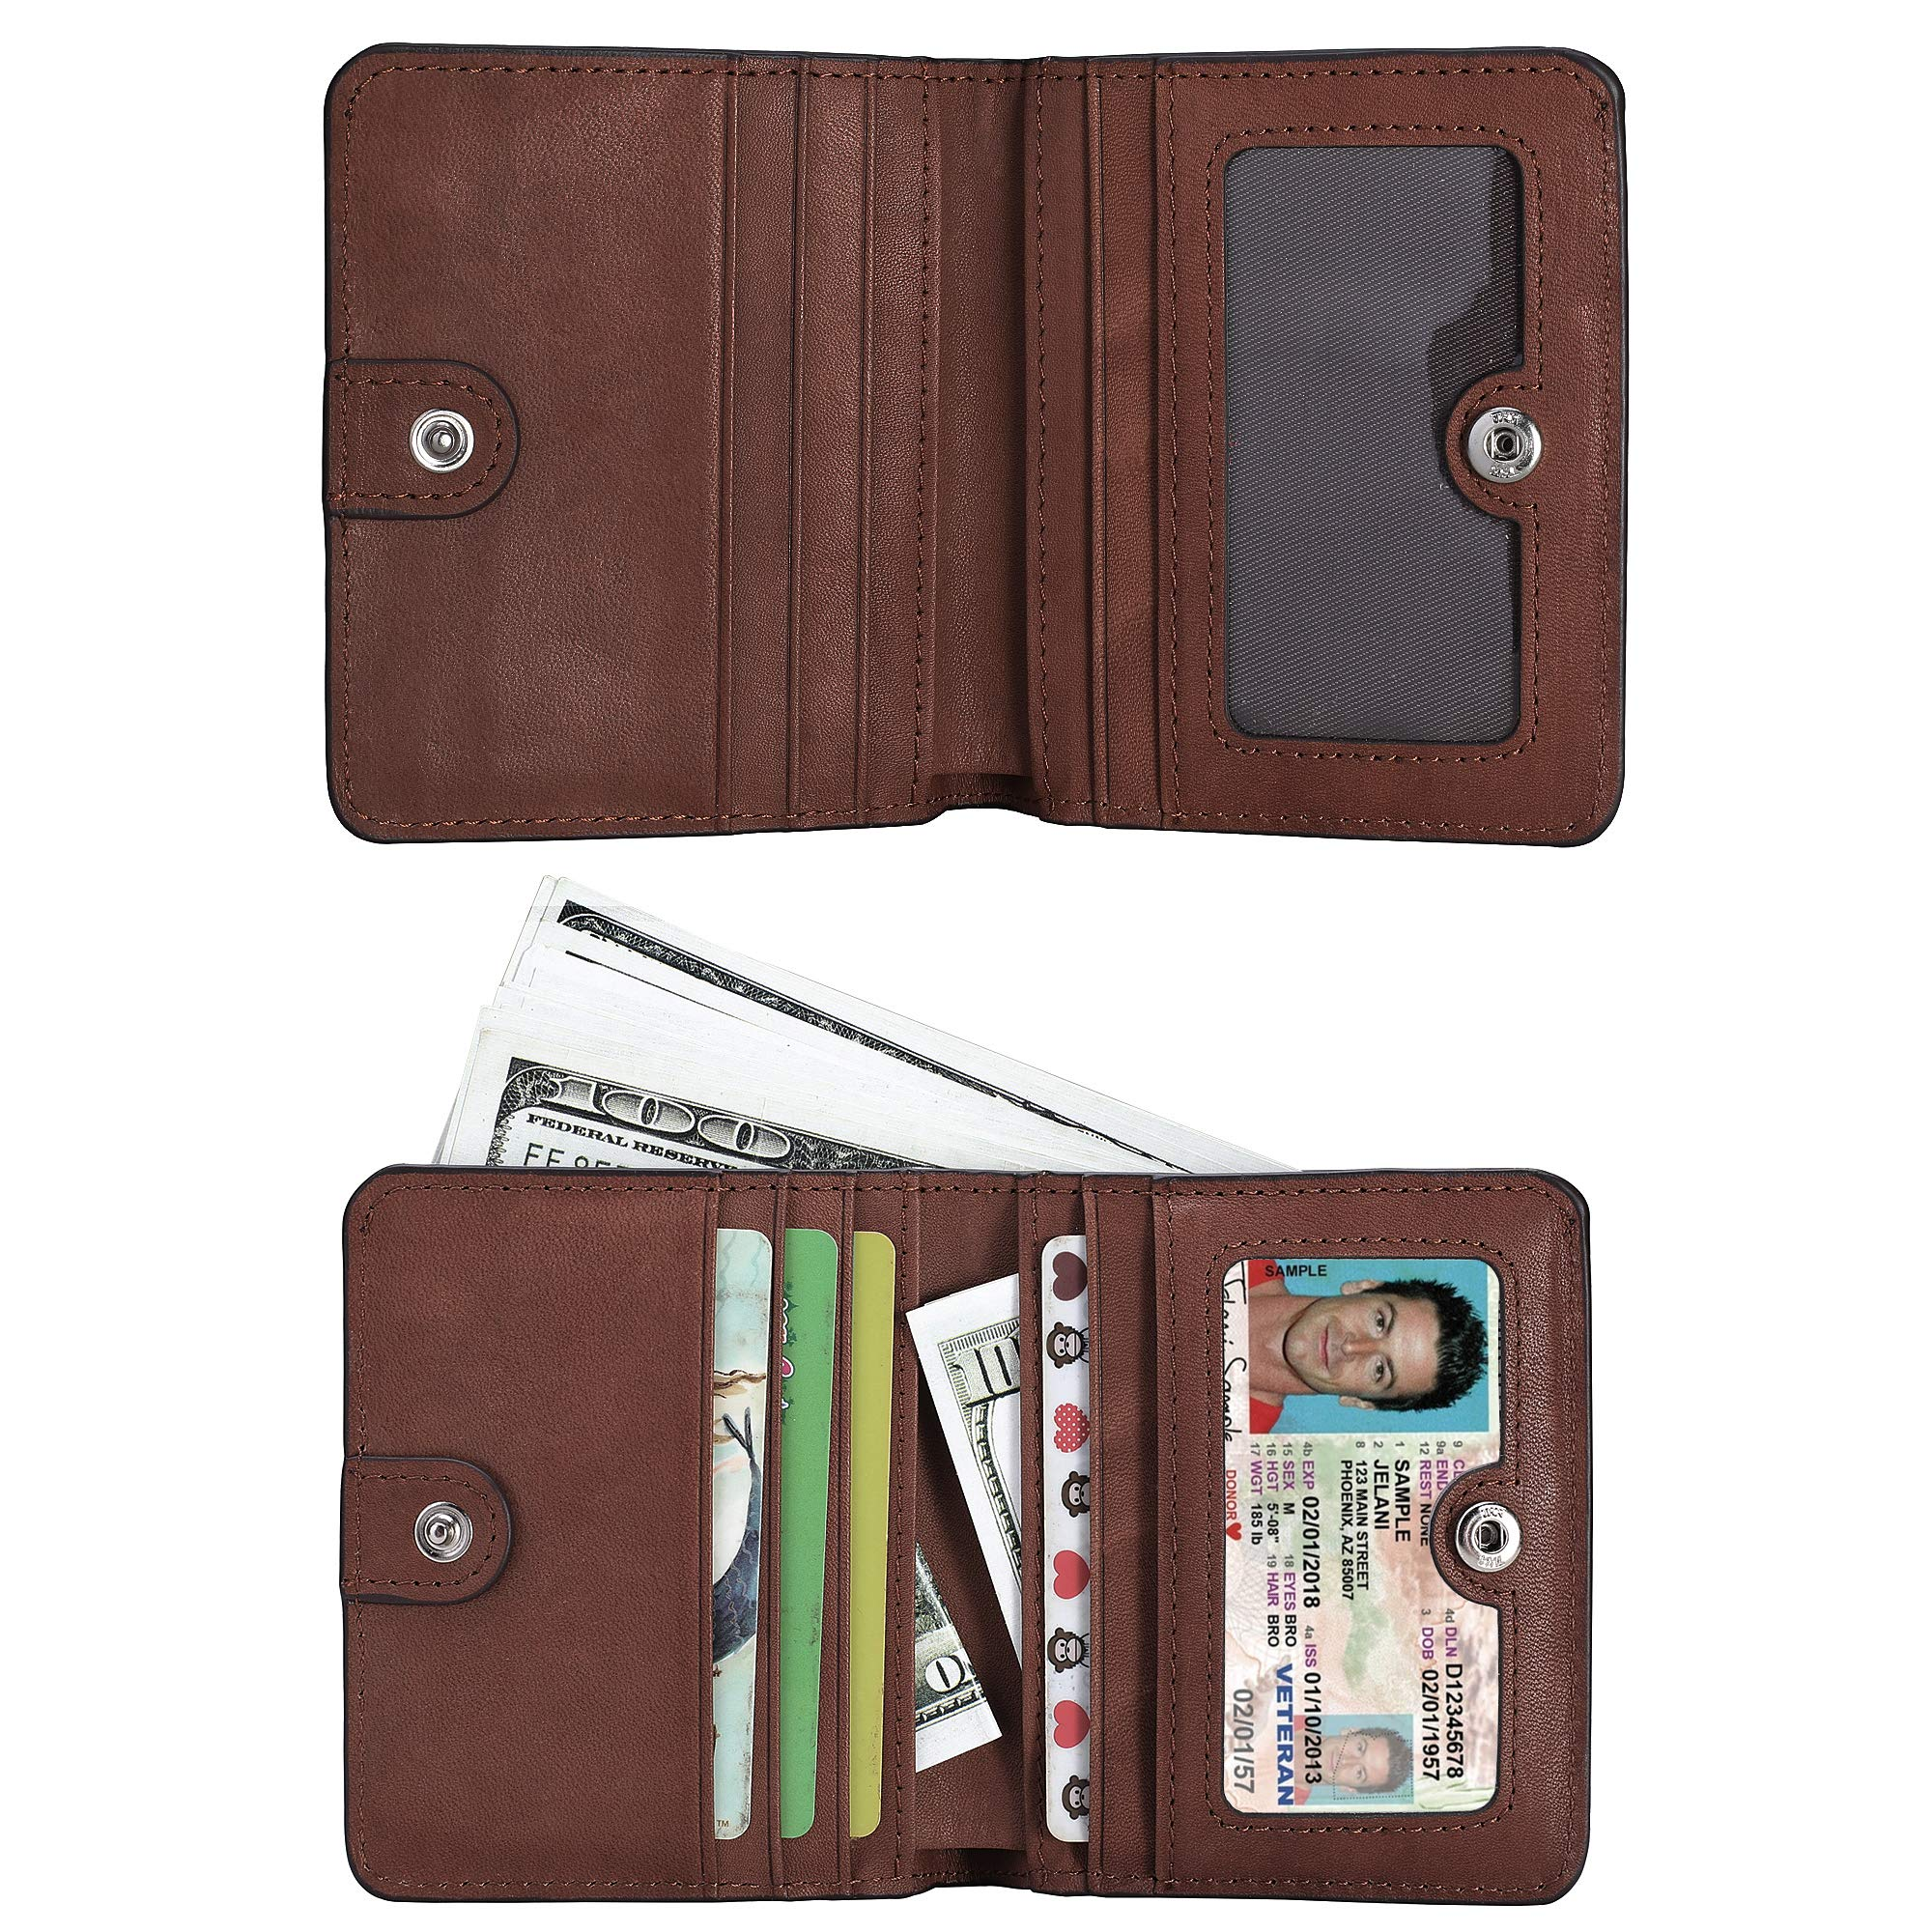 BIG SALE-AINIMOER Women's RFID Blocking Leather Small Compact Bifold Pocket Wallet Ladies Mini Purse with id Window (Vintage Brown) by AINIMOER (Image #3)